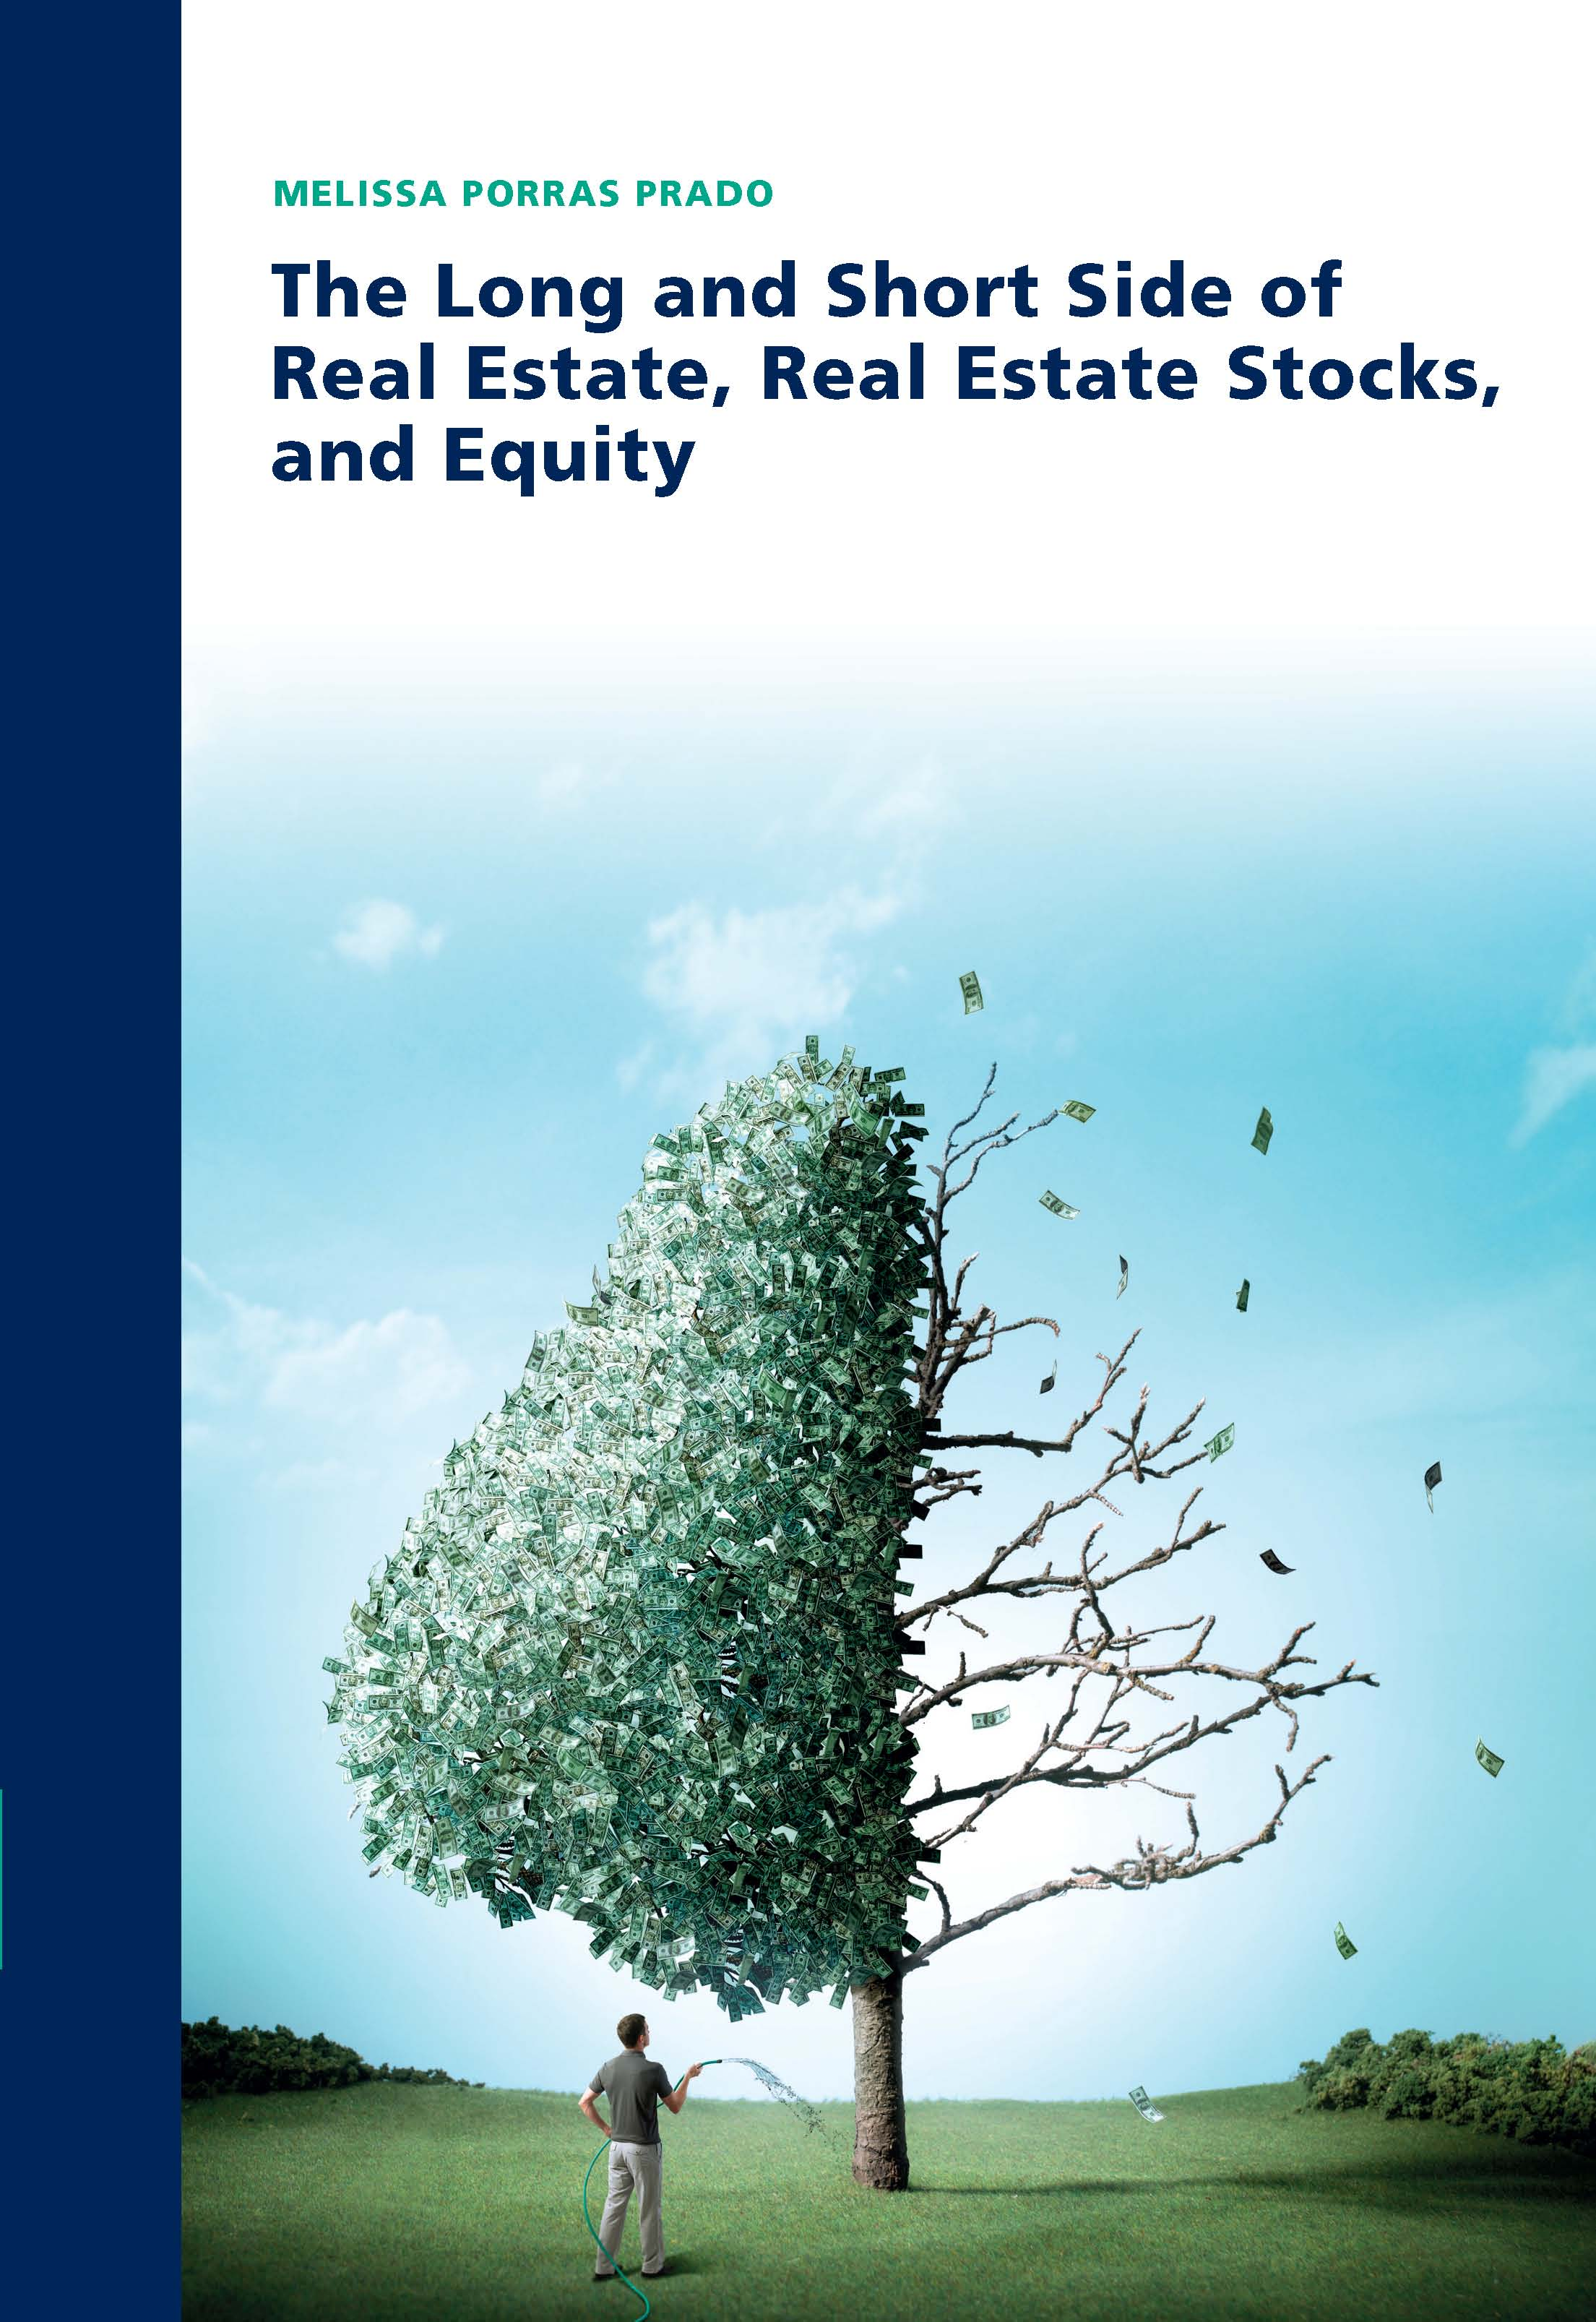 The Long and Short Side of Real Estate, Real Estate Stocks, and Equity